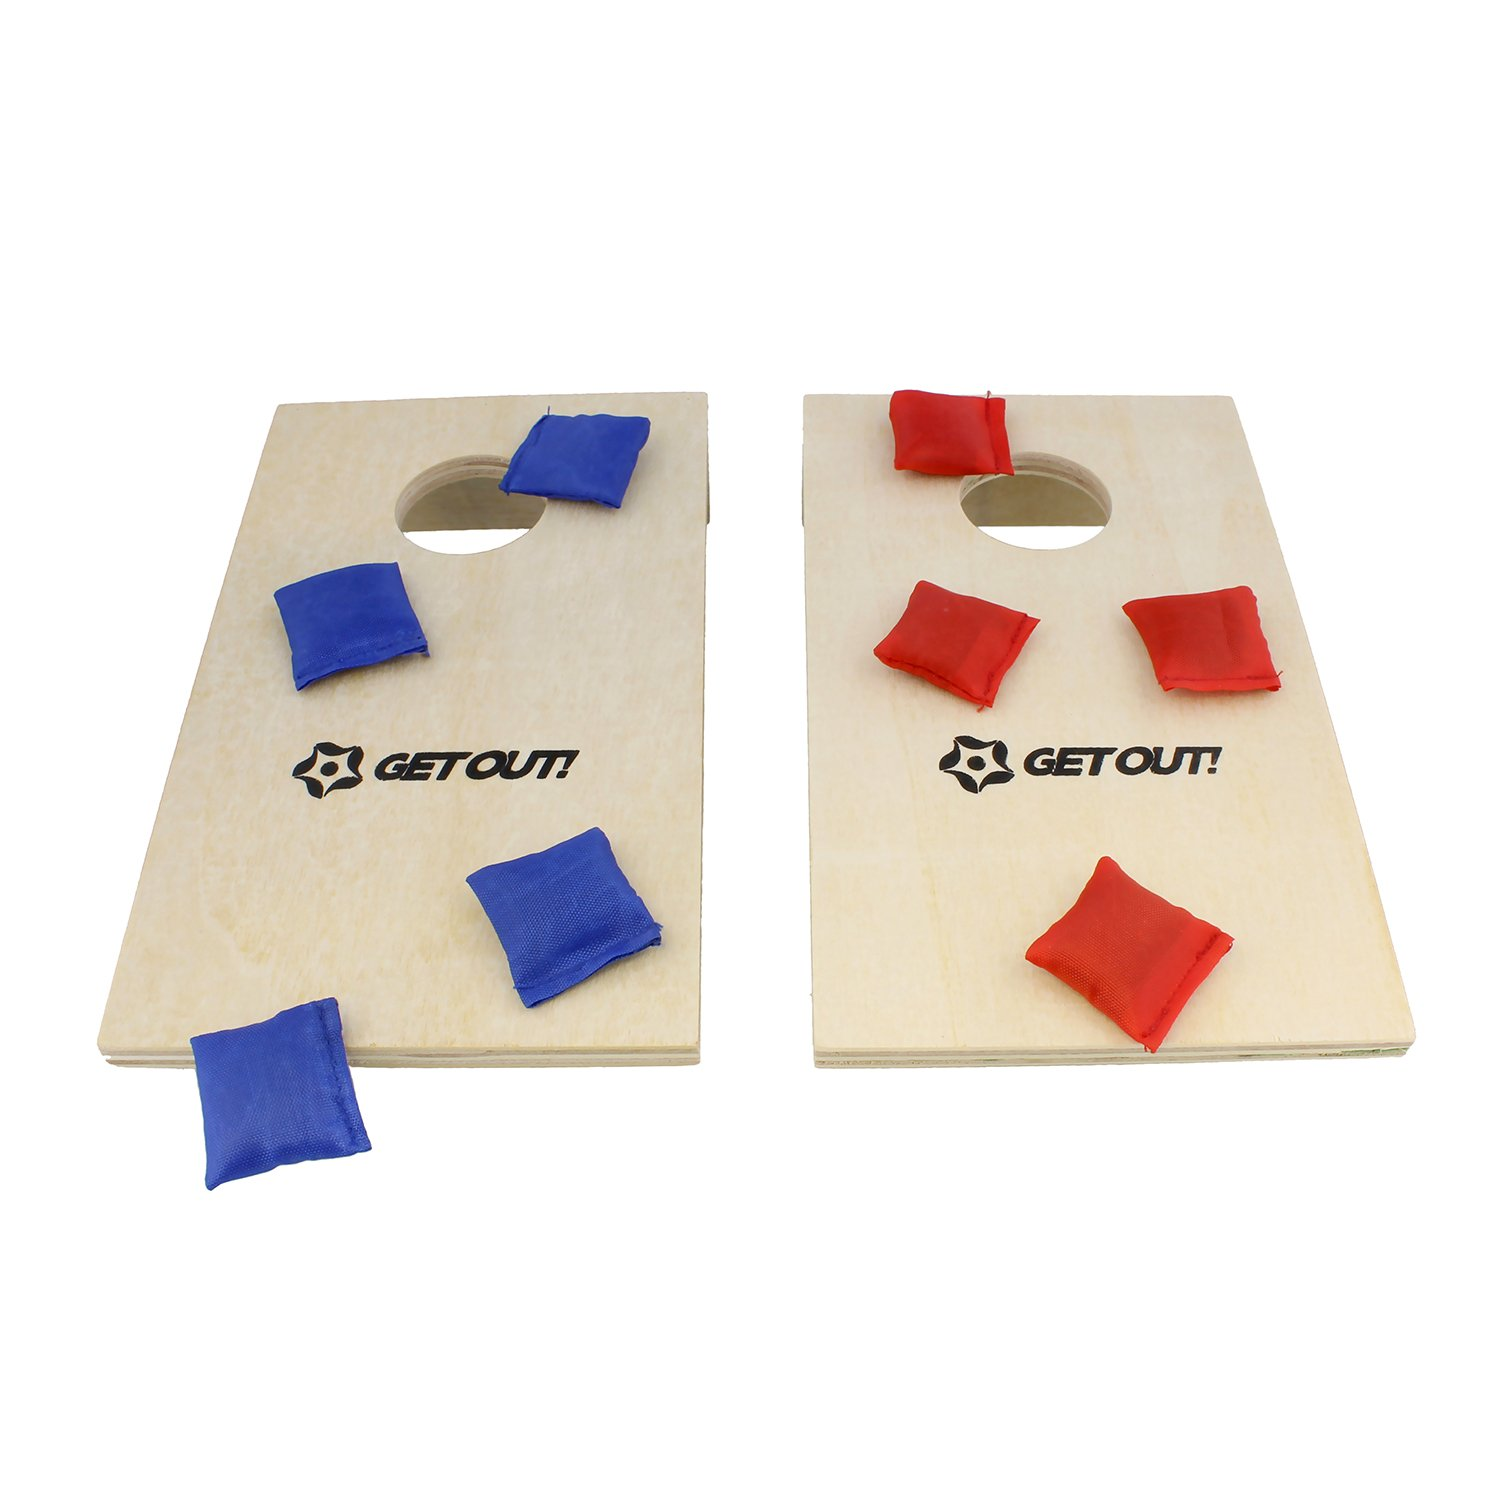 Get Out! | Mini Corn Hole Set, Bean Bag Toss Game – Tabletop Cornhole, Kids Bean Bag Toss Game, Indoor Cornhole Game